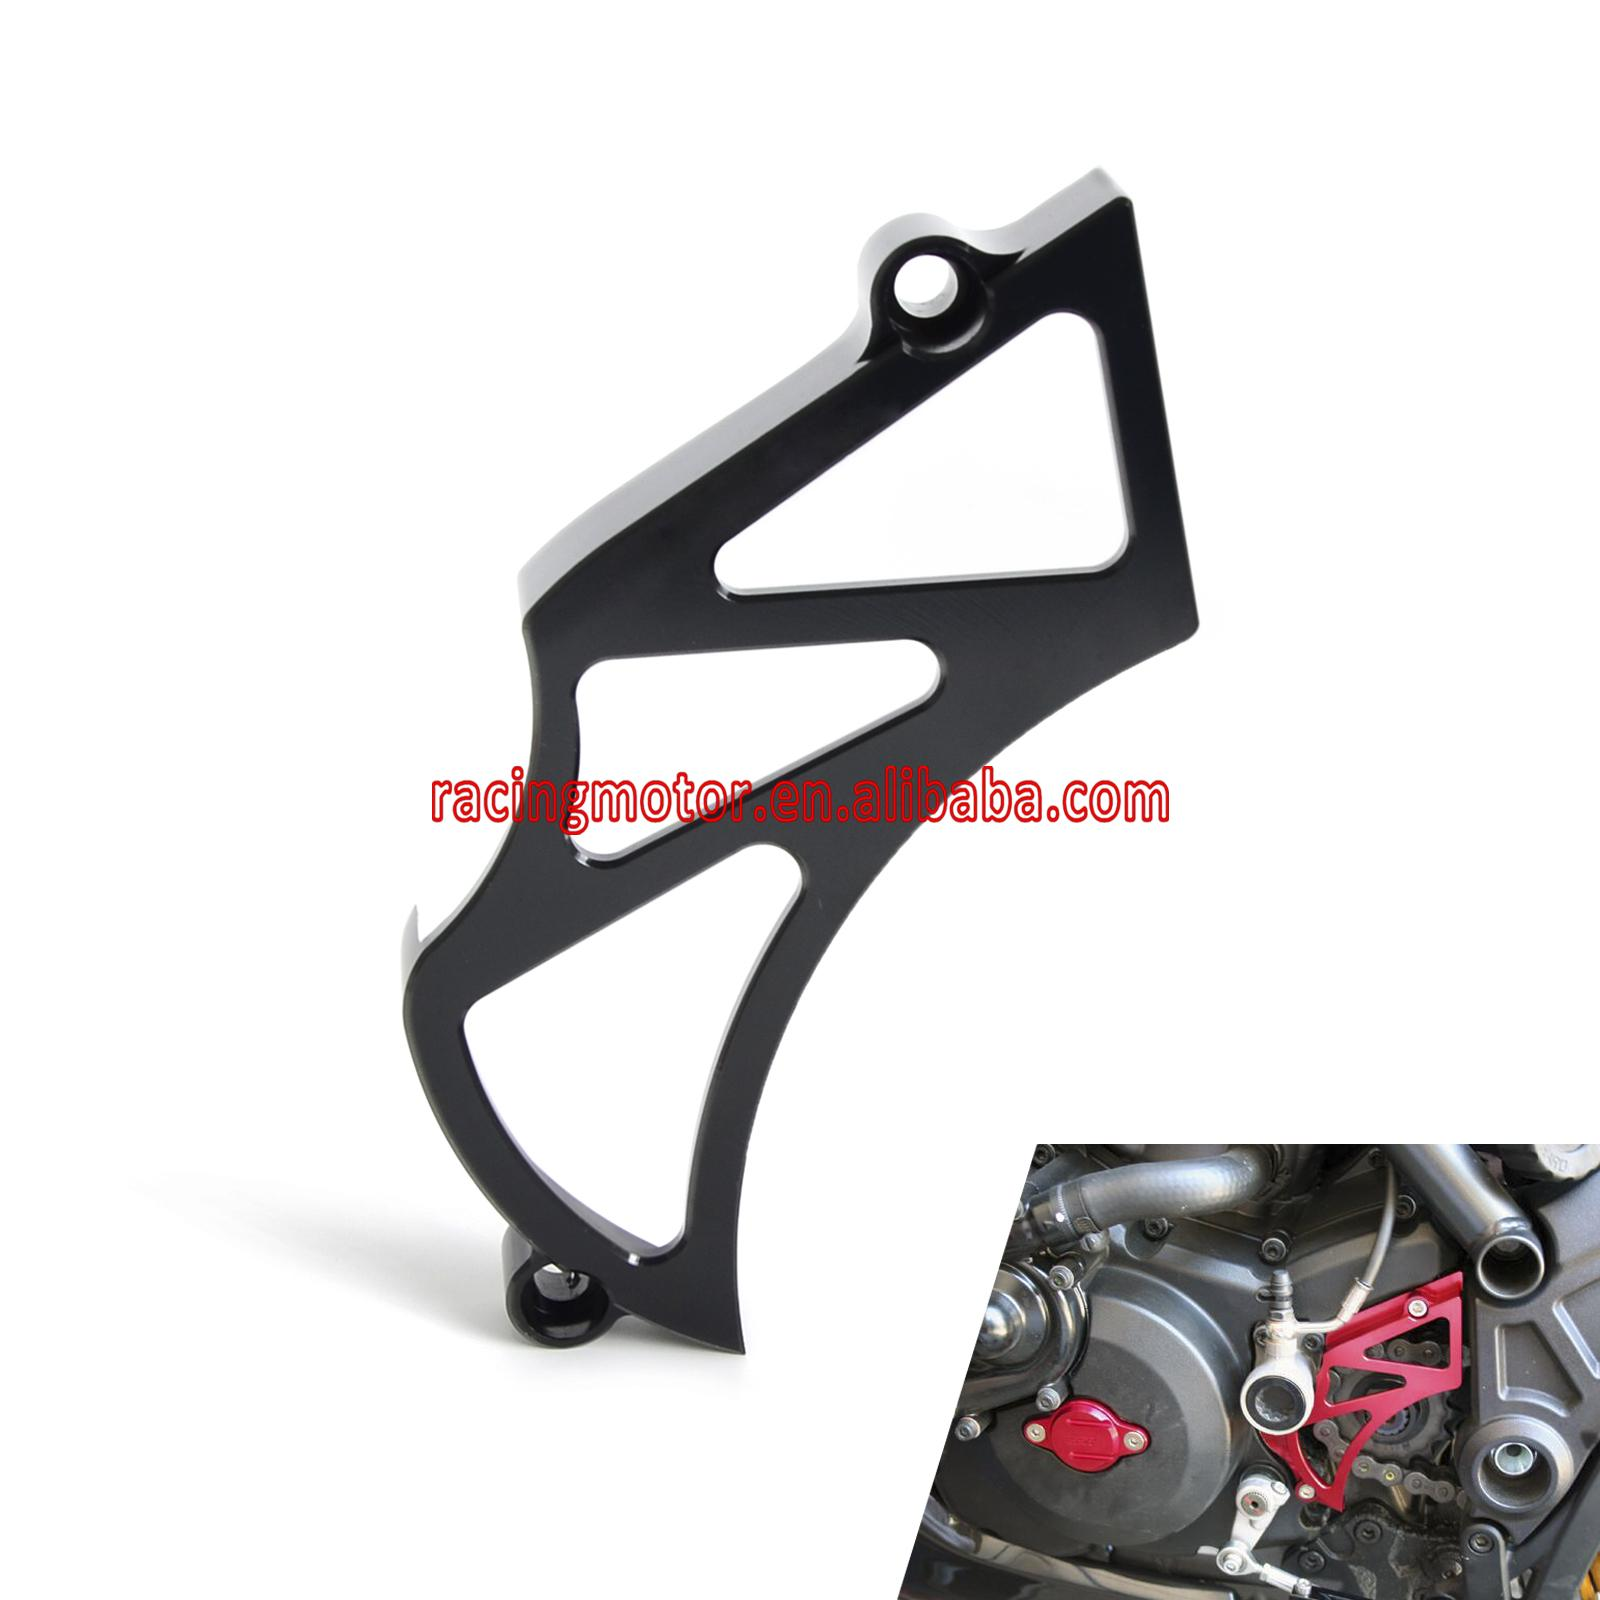 Billet Front Sprocket Cover Chain Guard Cover for Ducati Diavel 2011 2016 696/796/1100 Diavel AMG All Year